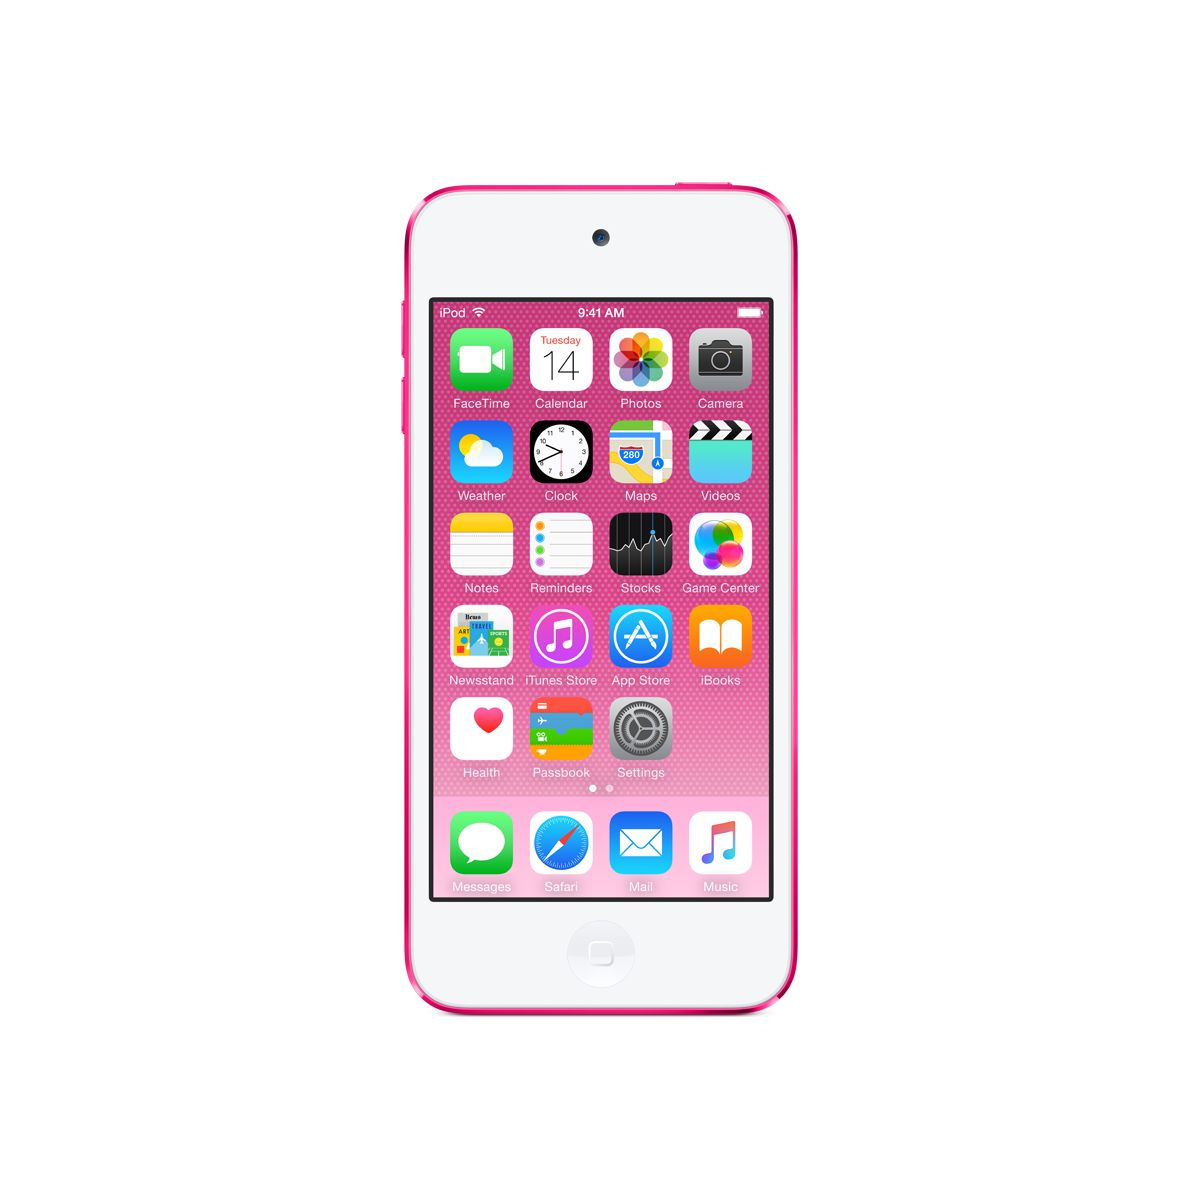 Apple ipod touch 32 go rose - livraison offerte : code livprem (photo)